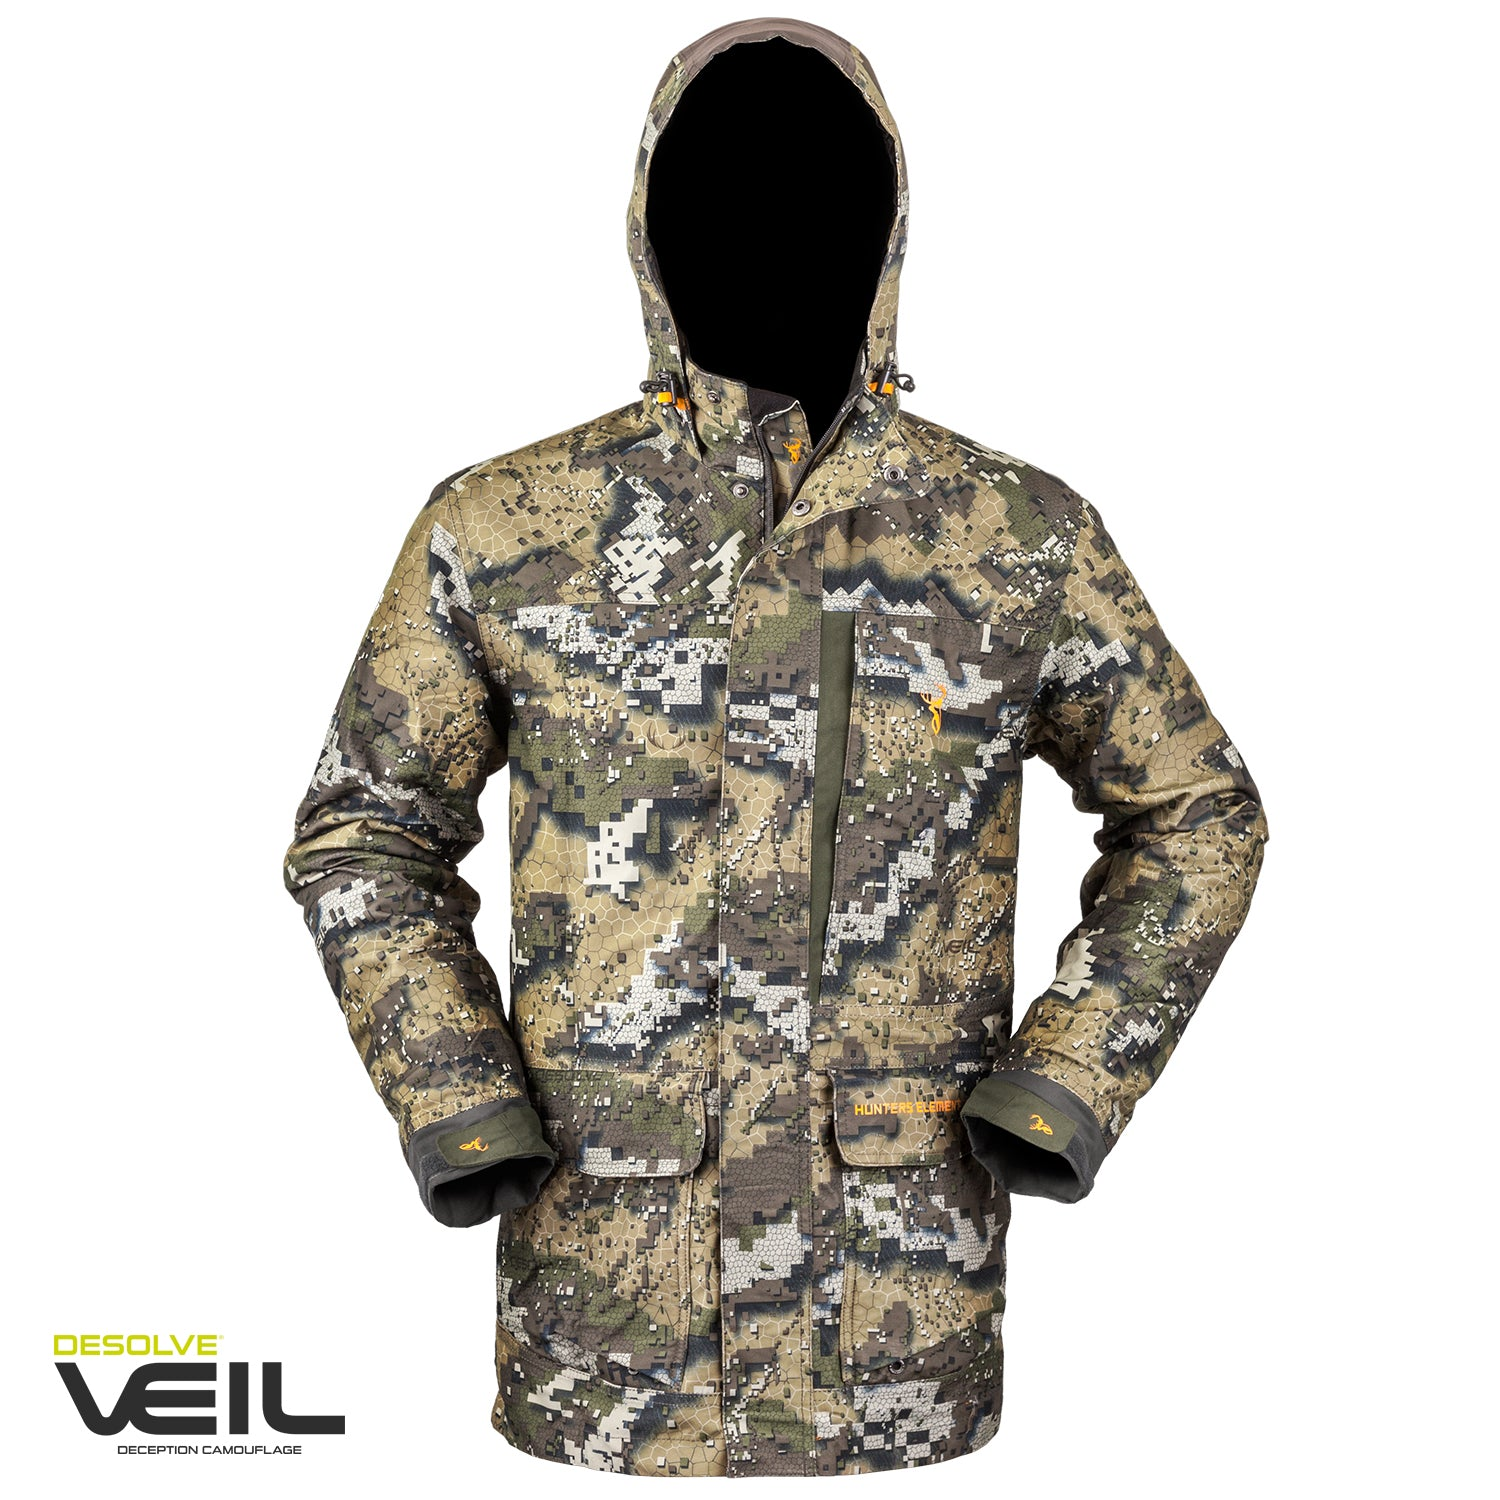 Hunters Element Downpour Elite Jacket - Veil Camo